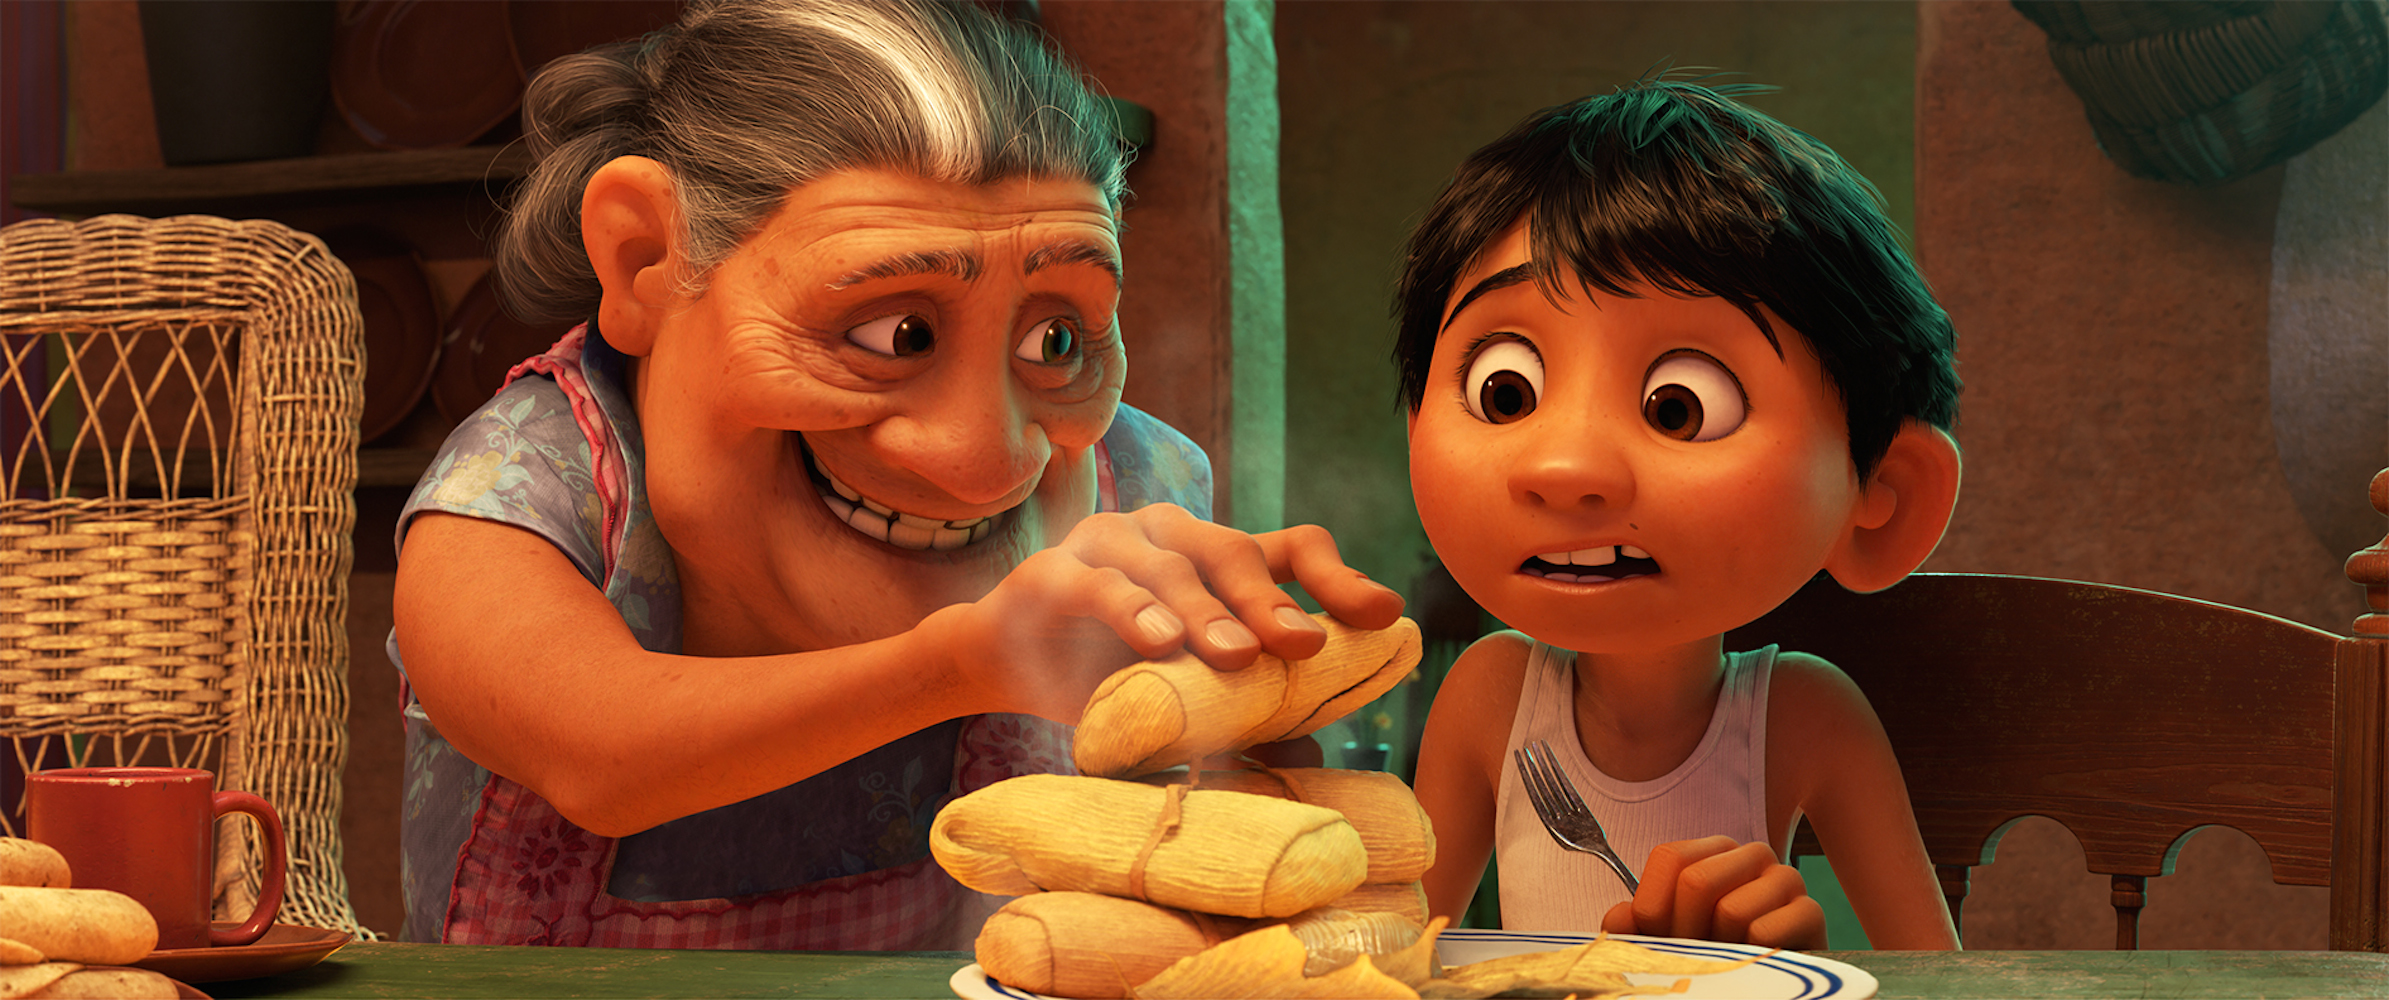 Listen to Latino Film Critics Explain What Mainstream Outlets Got Wrong About 'Coco'